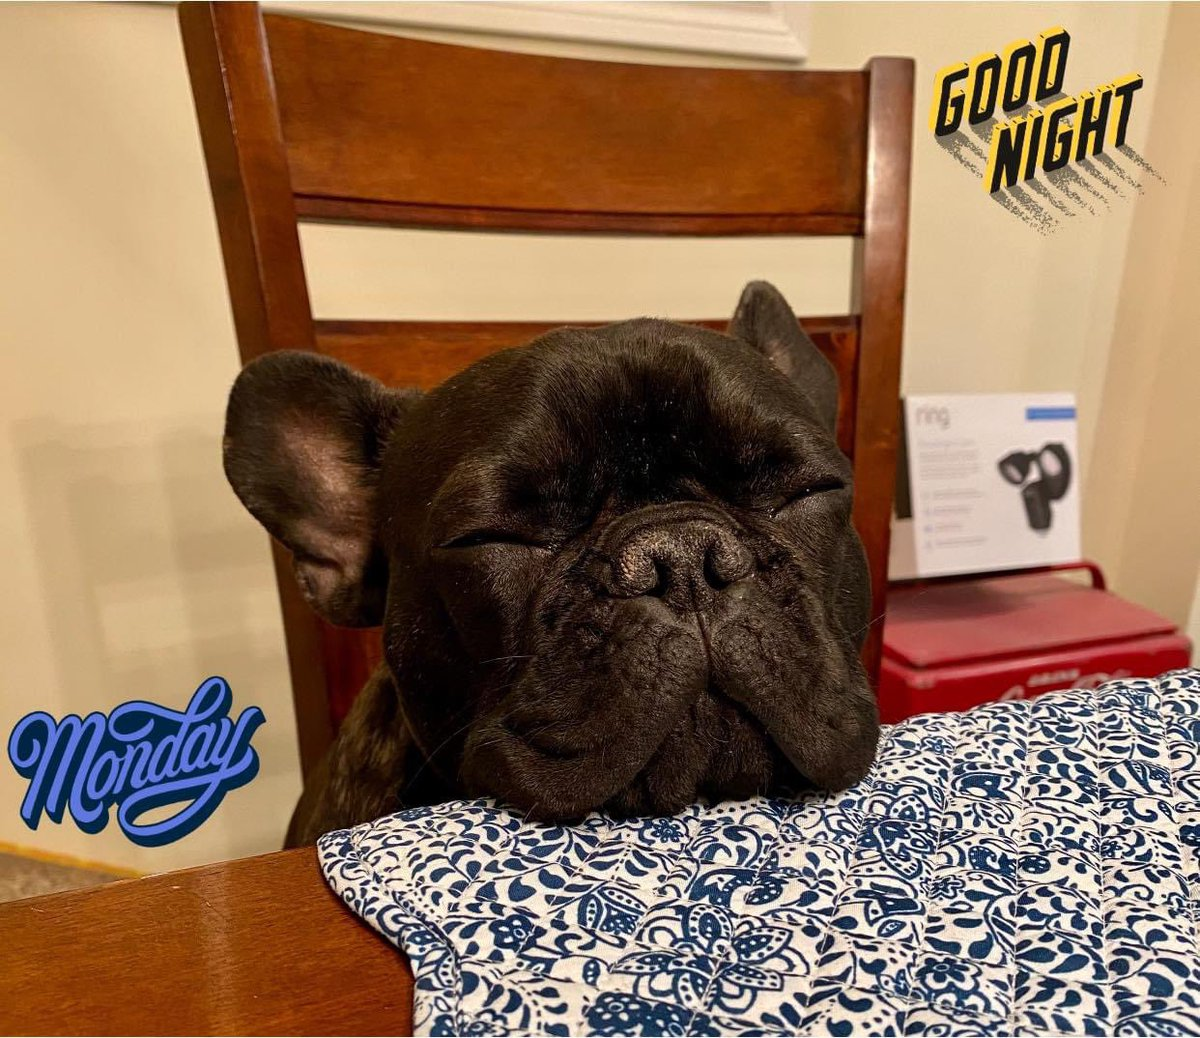 It's a textbook Monday when you're so TIRED you fall asleep with your head on the dinner table. 💤   #doggo #Sleepy #SleepyTime #dinner #monday #eyesclosed #puppy #frenchbulldog #frenchie #table #diner #ygk #ff #ifb #follow #DogsofTwittter #dog #dogs #blackdog #doggy #animals